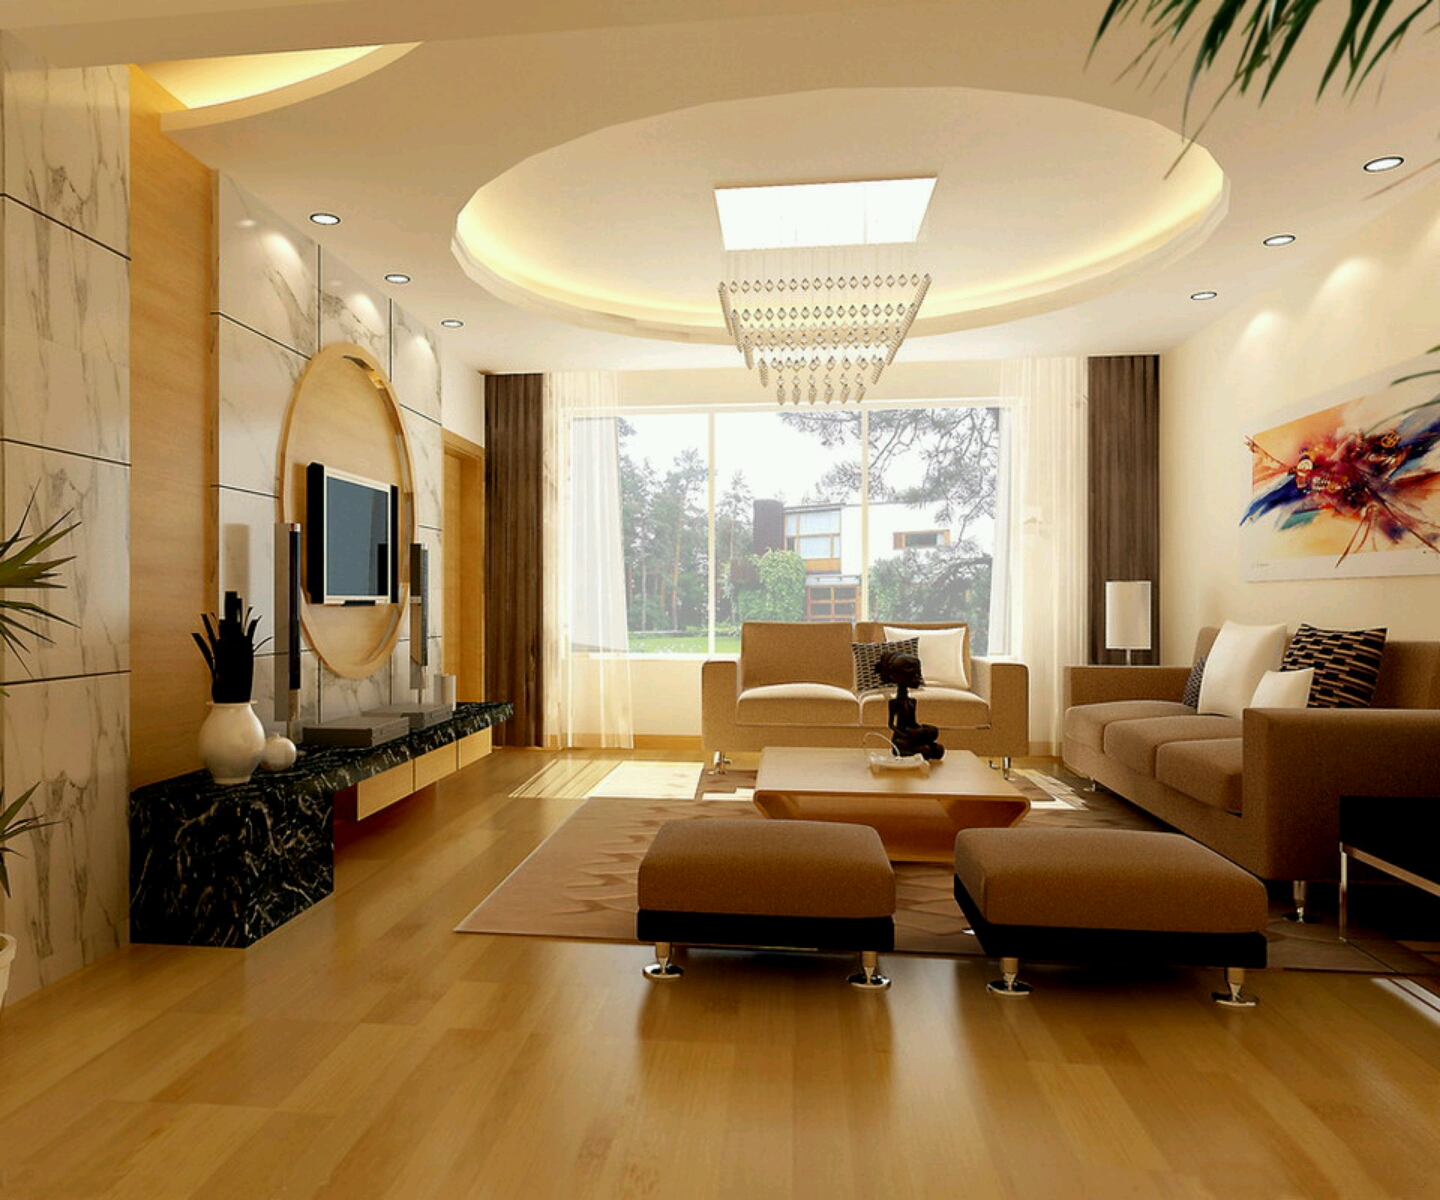 Modern interior decoration living rooms ceiling designs - Interior design styles living room ...